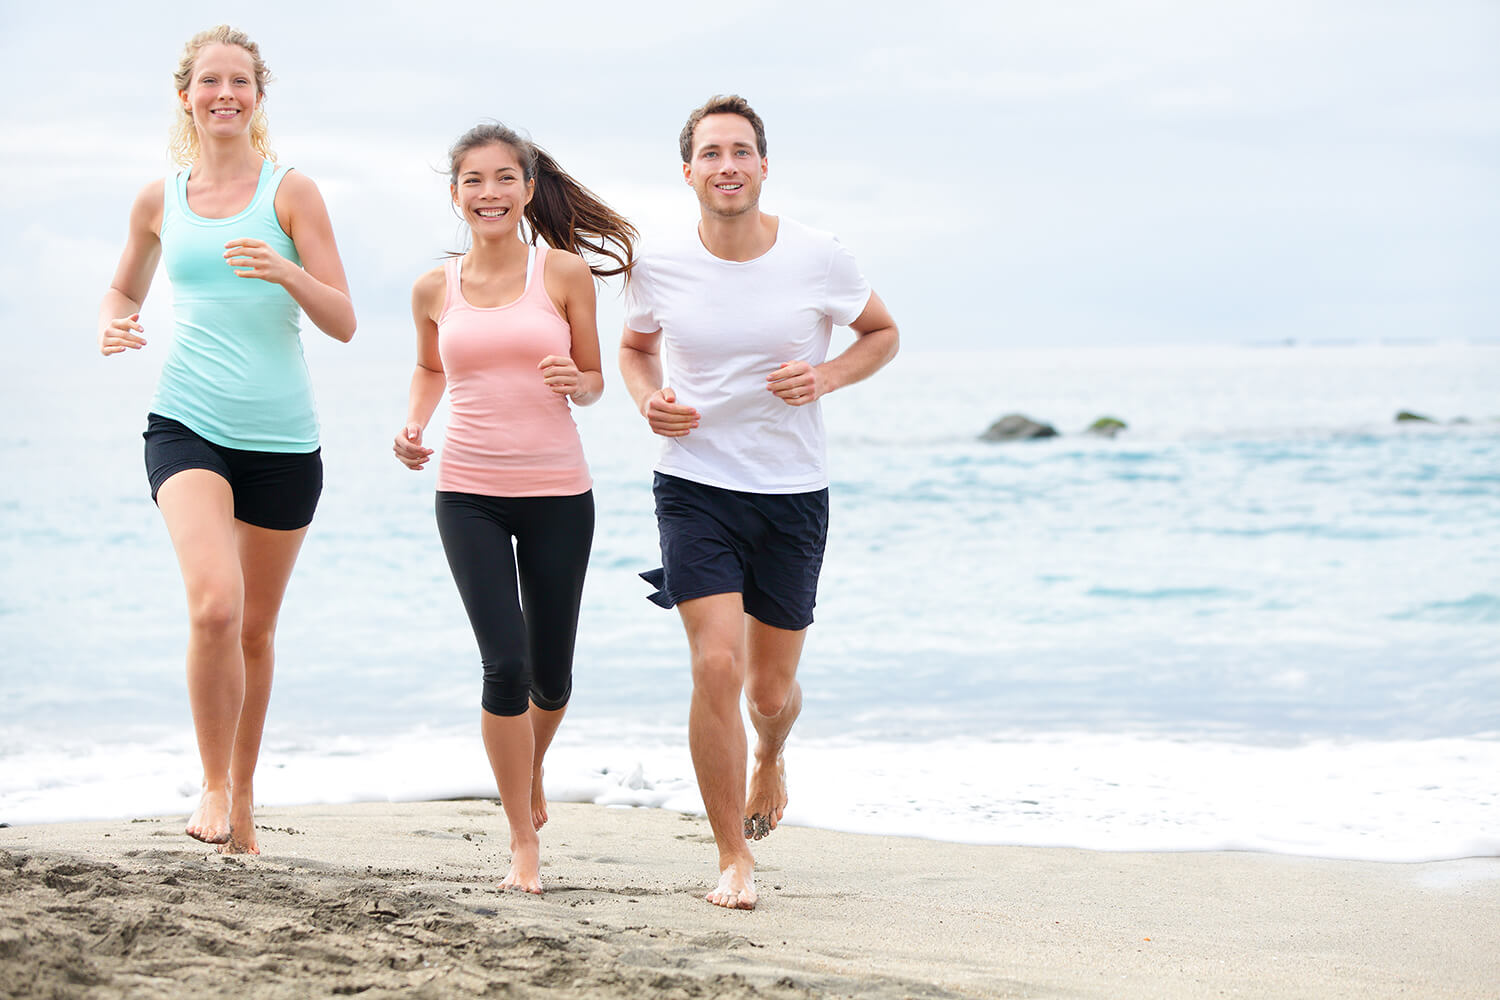 Two women and a man jogging along the seashore